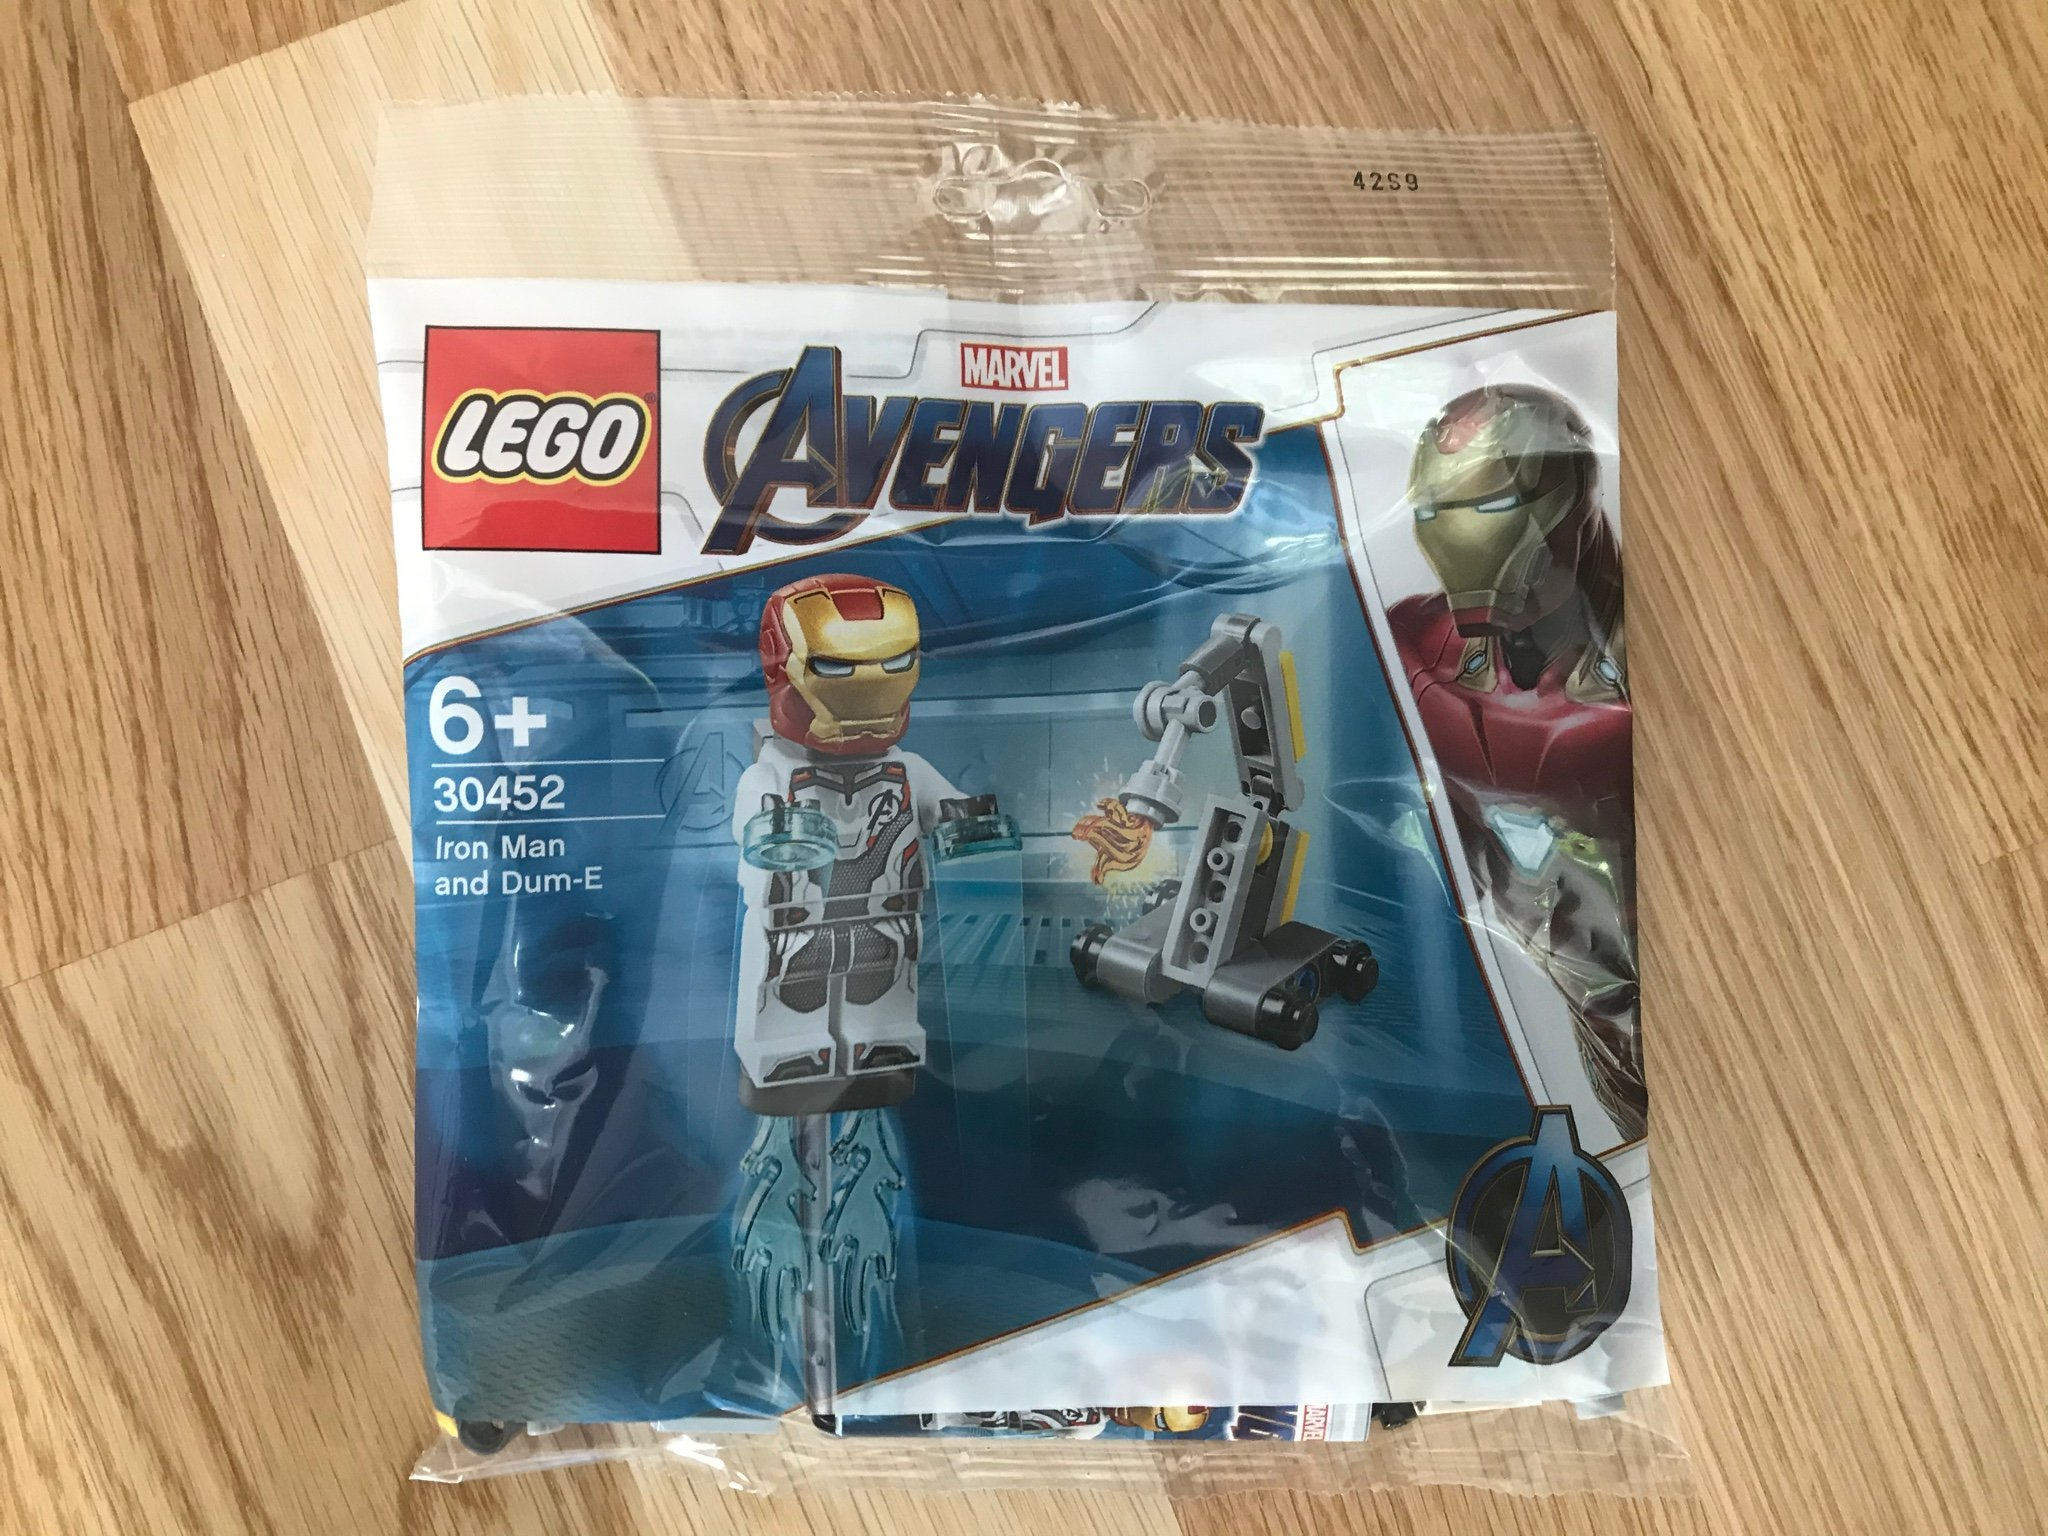 LEGO 30452 Iron Man and Dum-E Marvel Avengers - oöppnad polybag